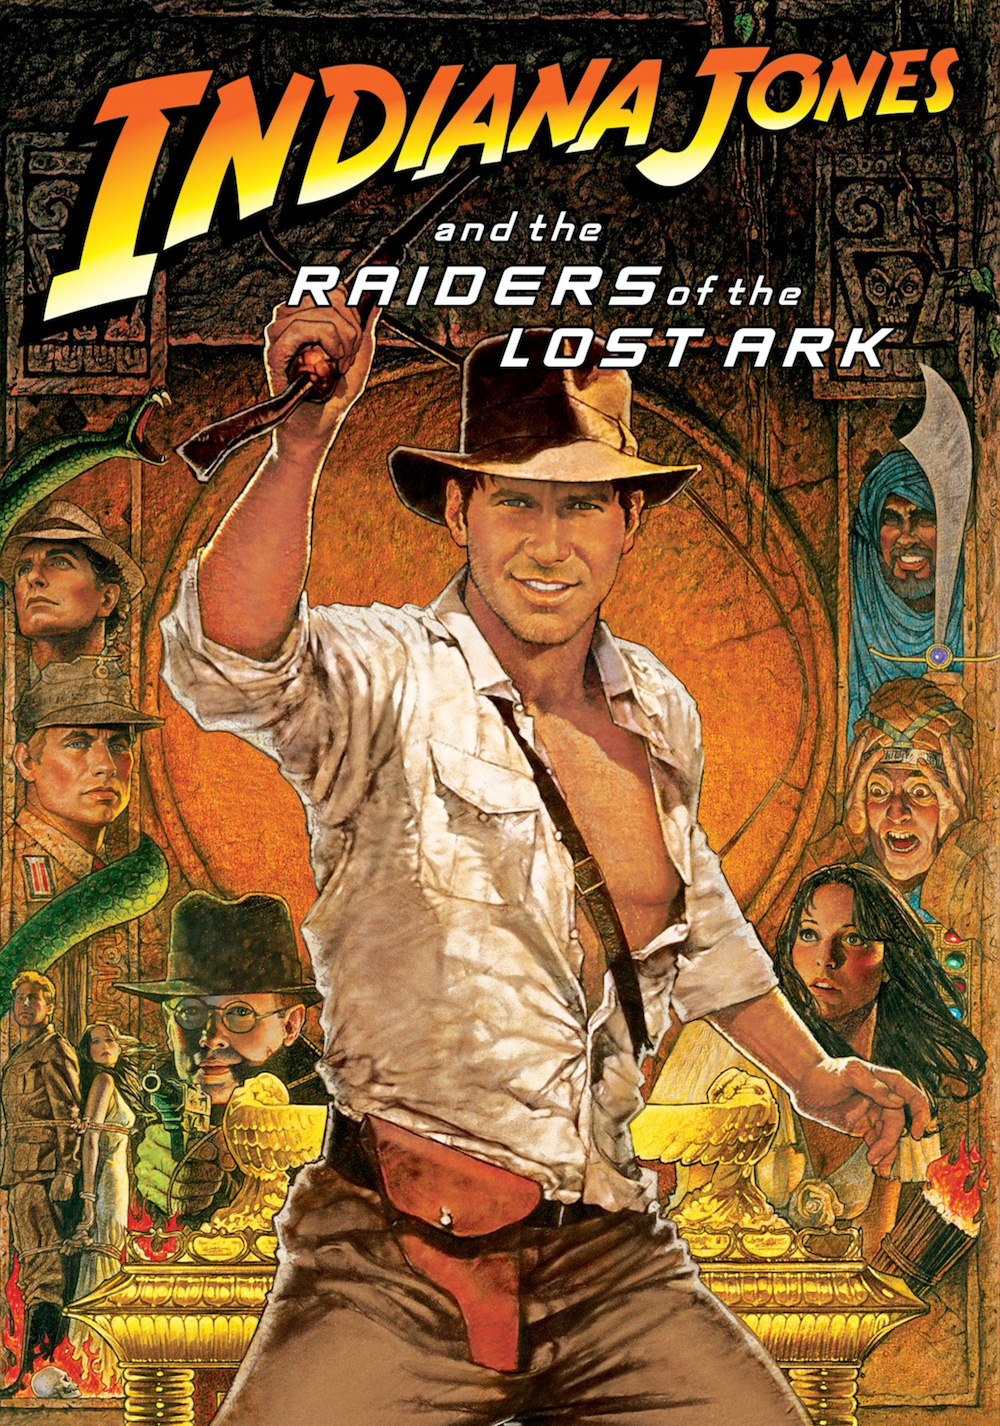 indiana-jones-and-the-raiders-of-the-lost-ark-5347156894b94.jpg